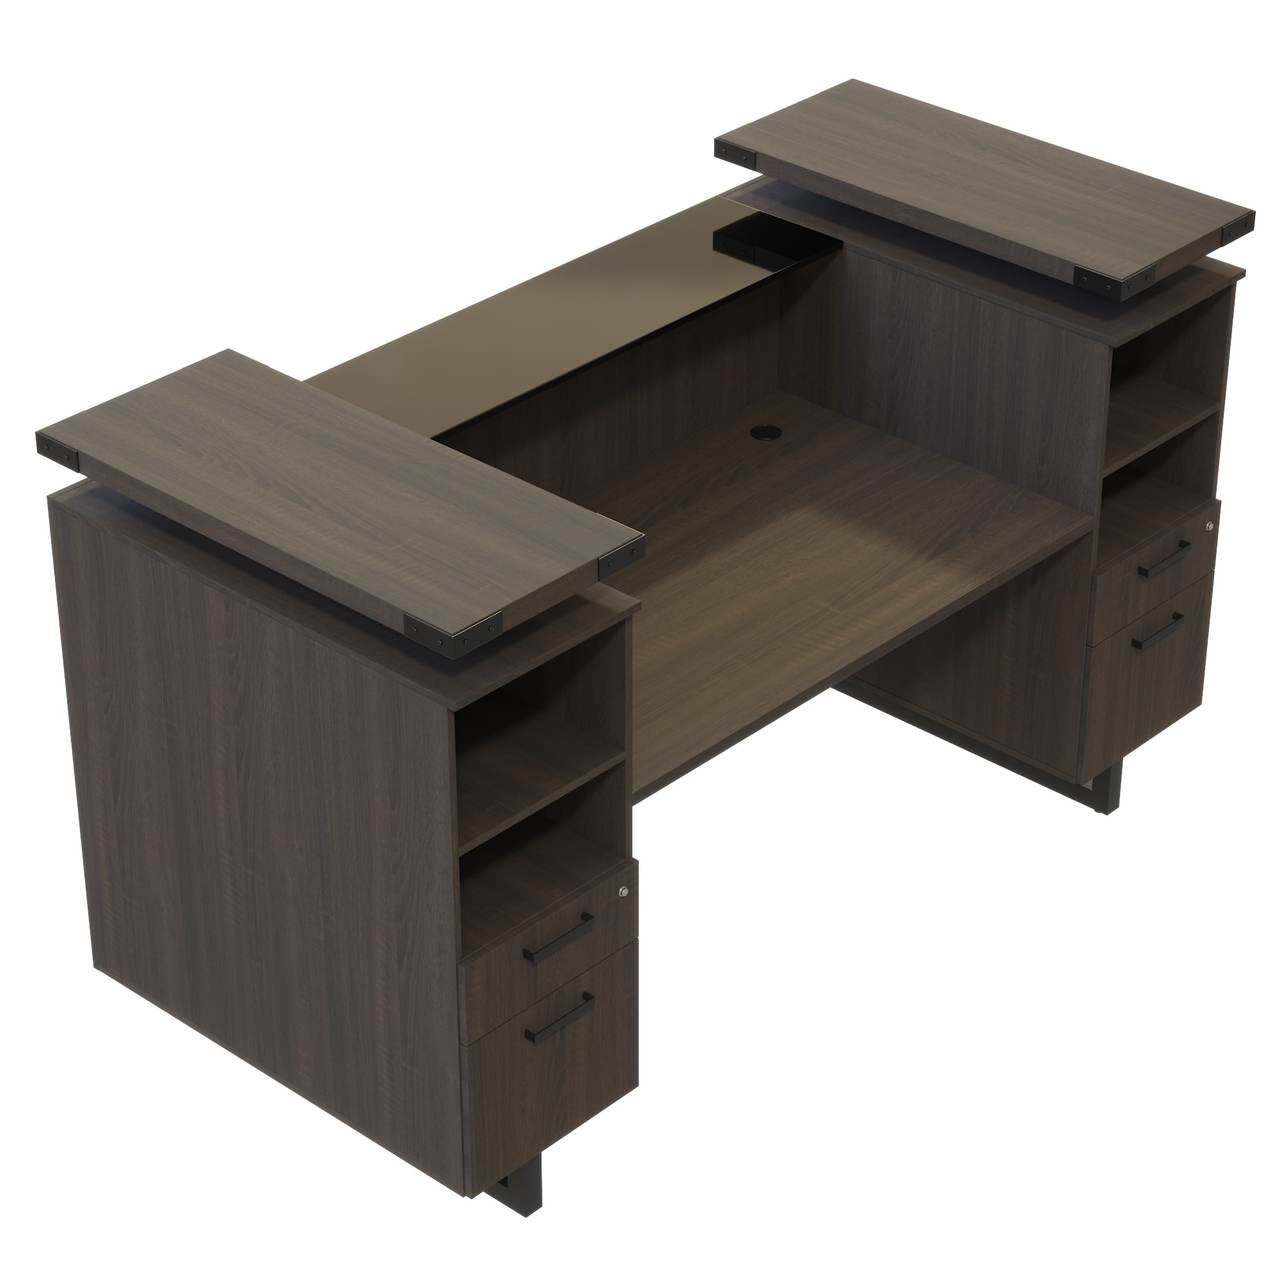 mirella southern tobacco reception desk top view